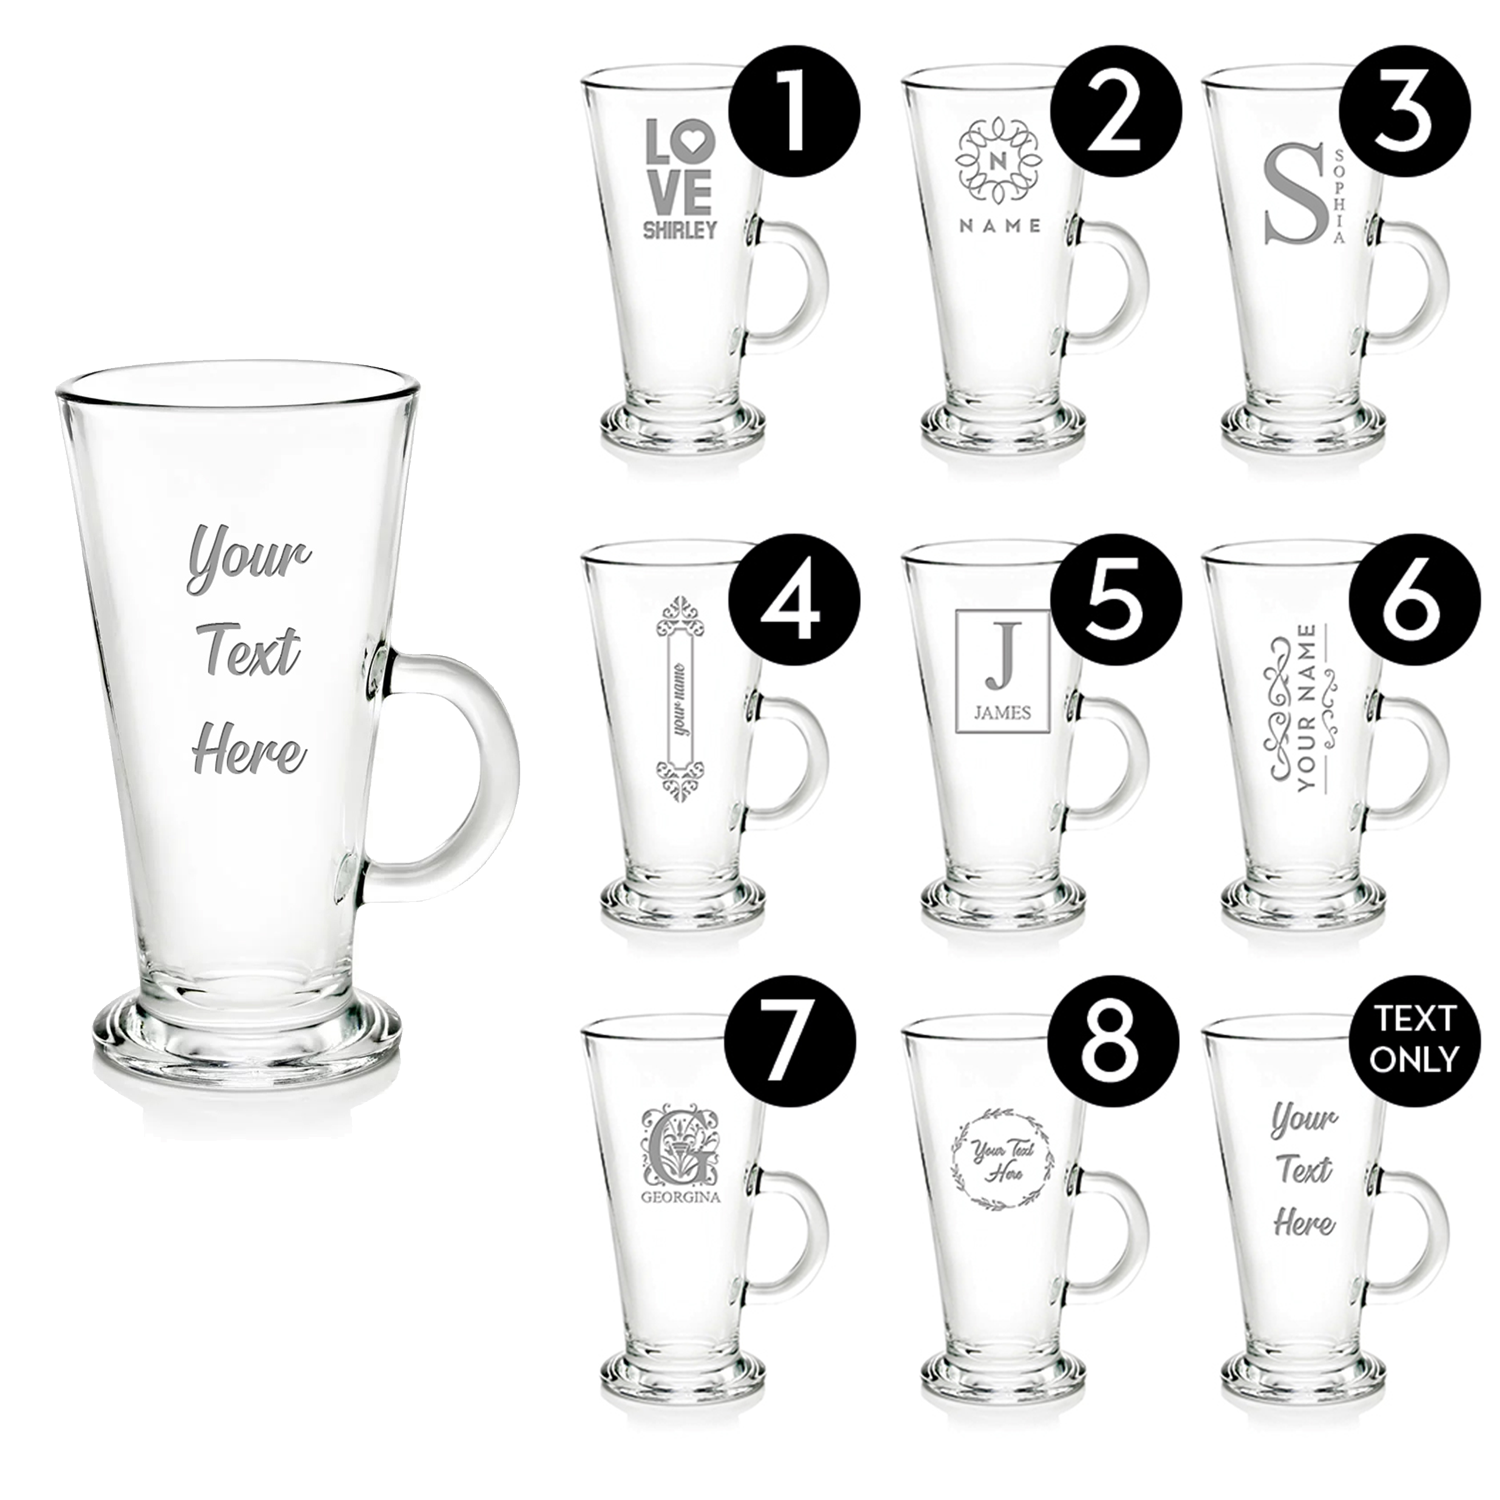 Personalised Glass Gifts Birthday Christmas Wedding Engrave Your Own Message 7